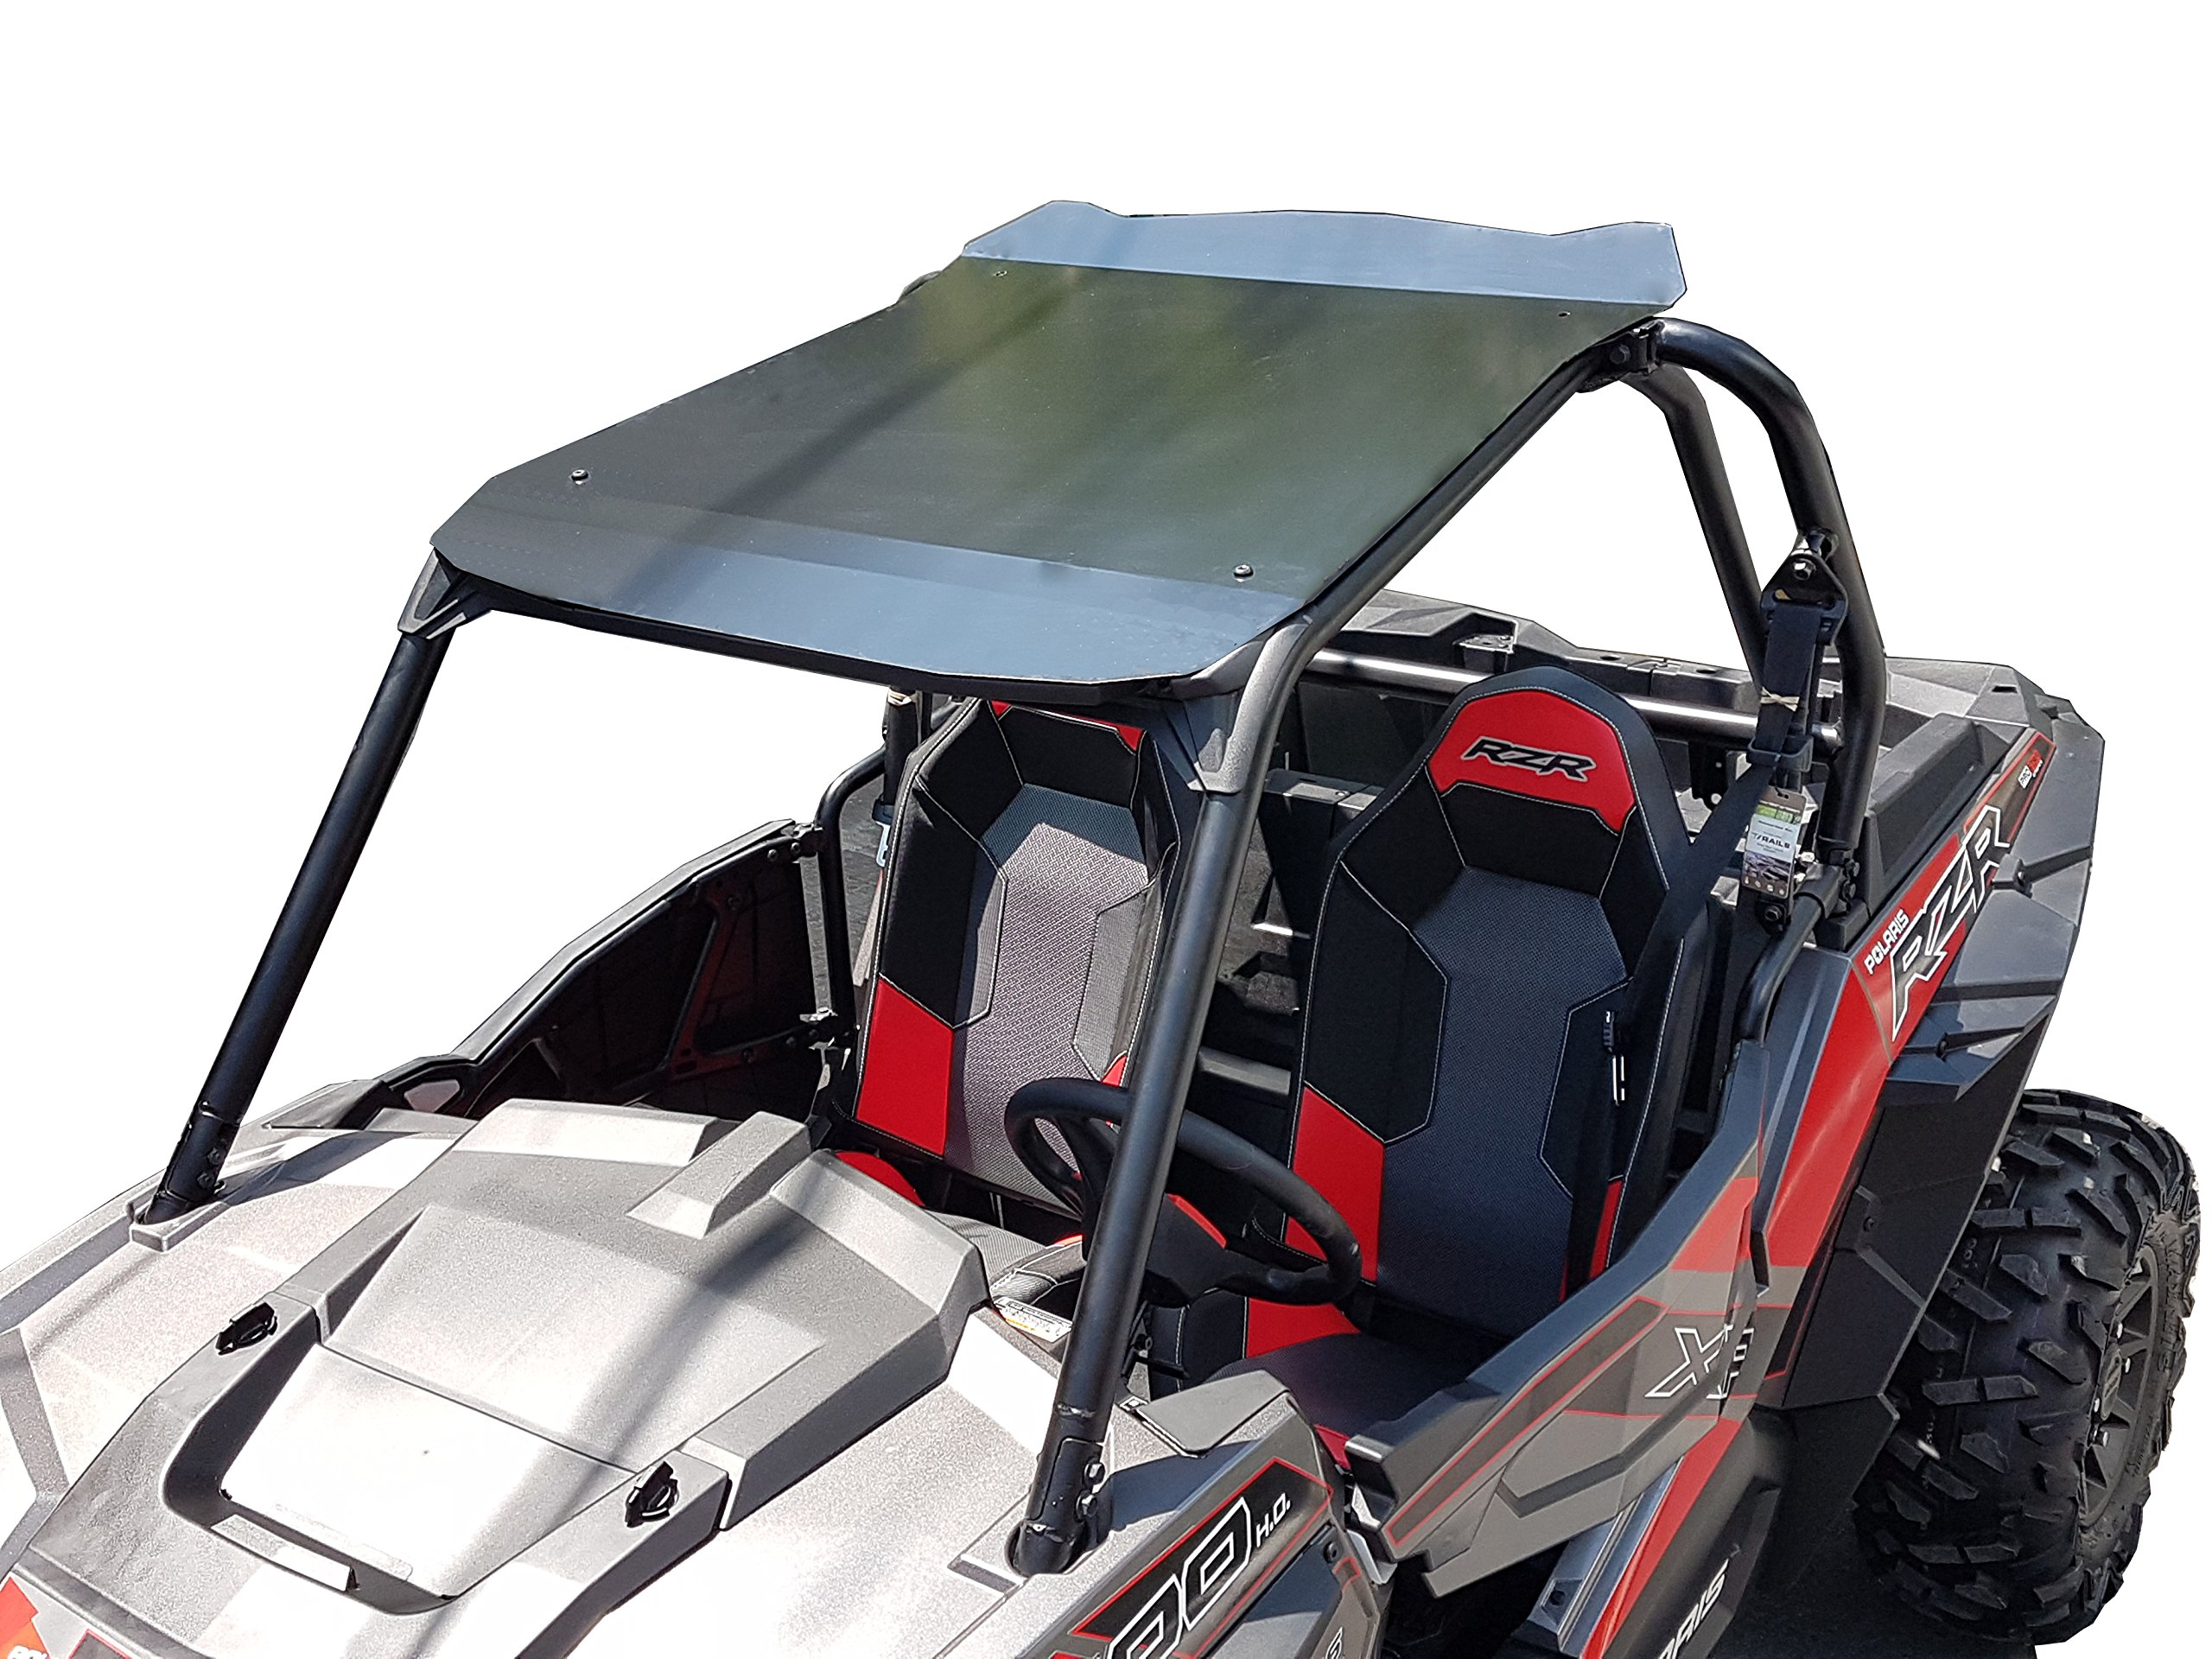 Polaris RZR XP 900/1000 Aluminum Roof 2 Seats Black